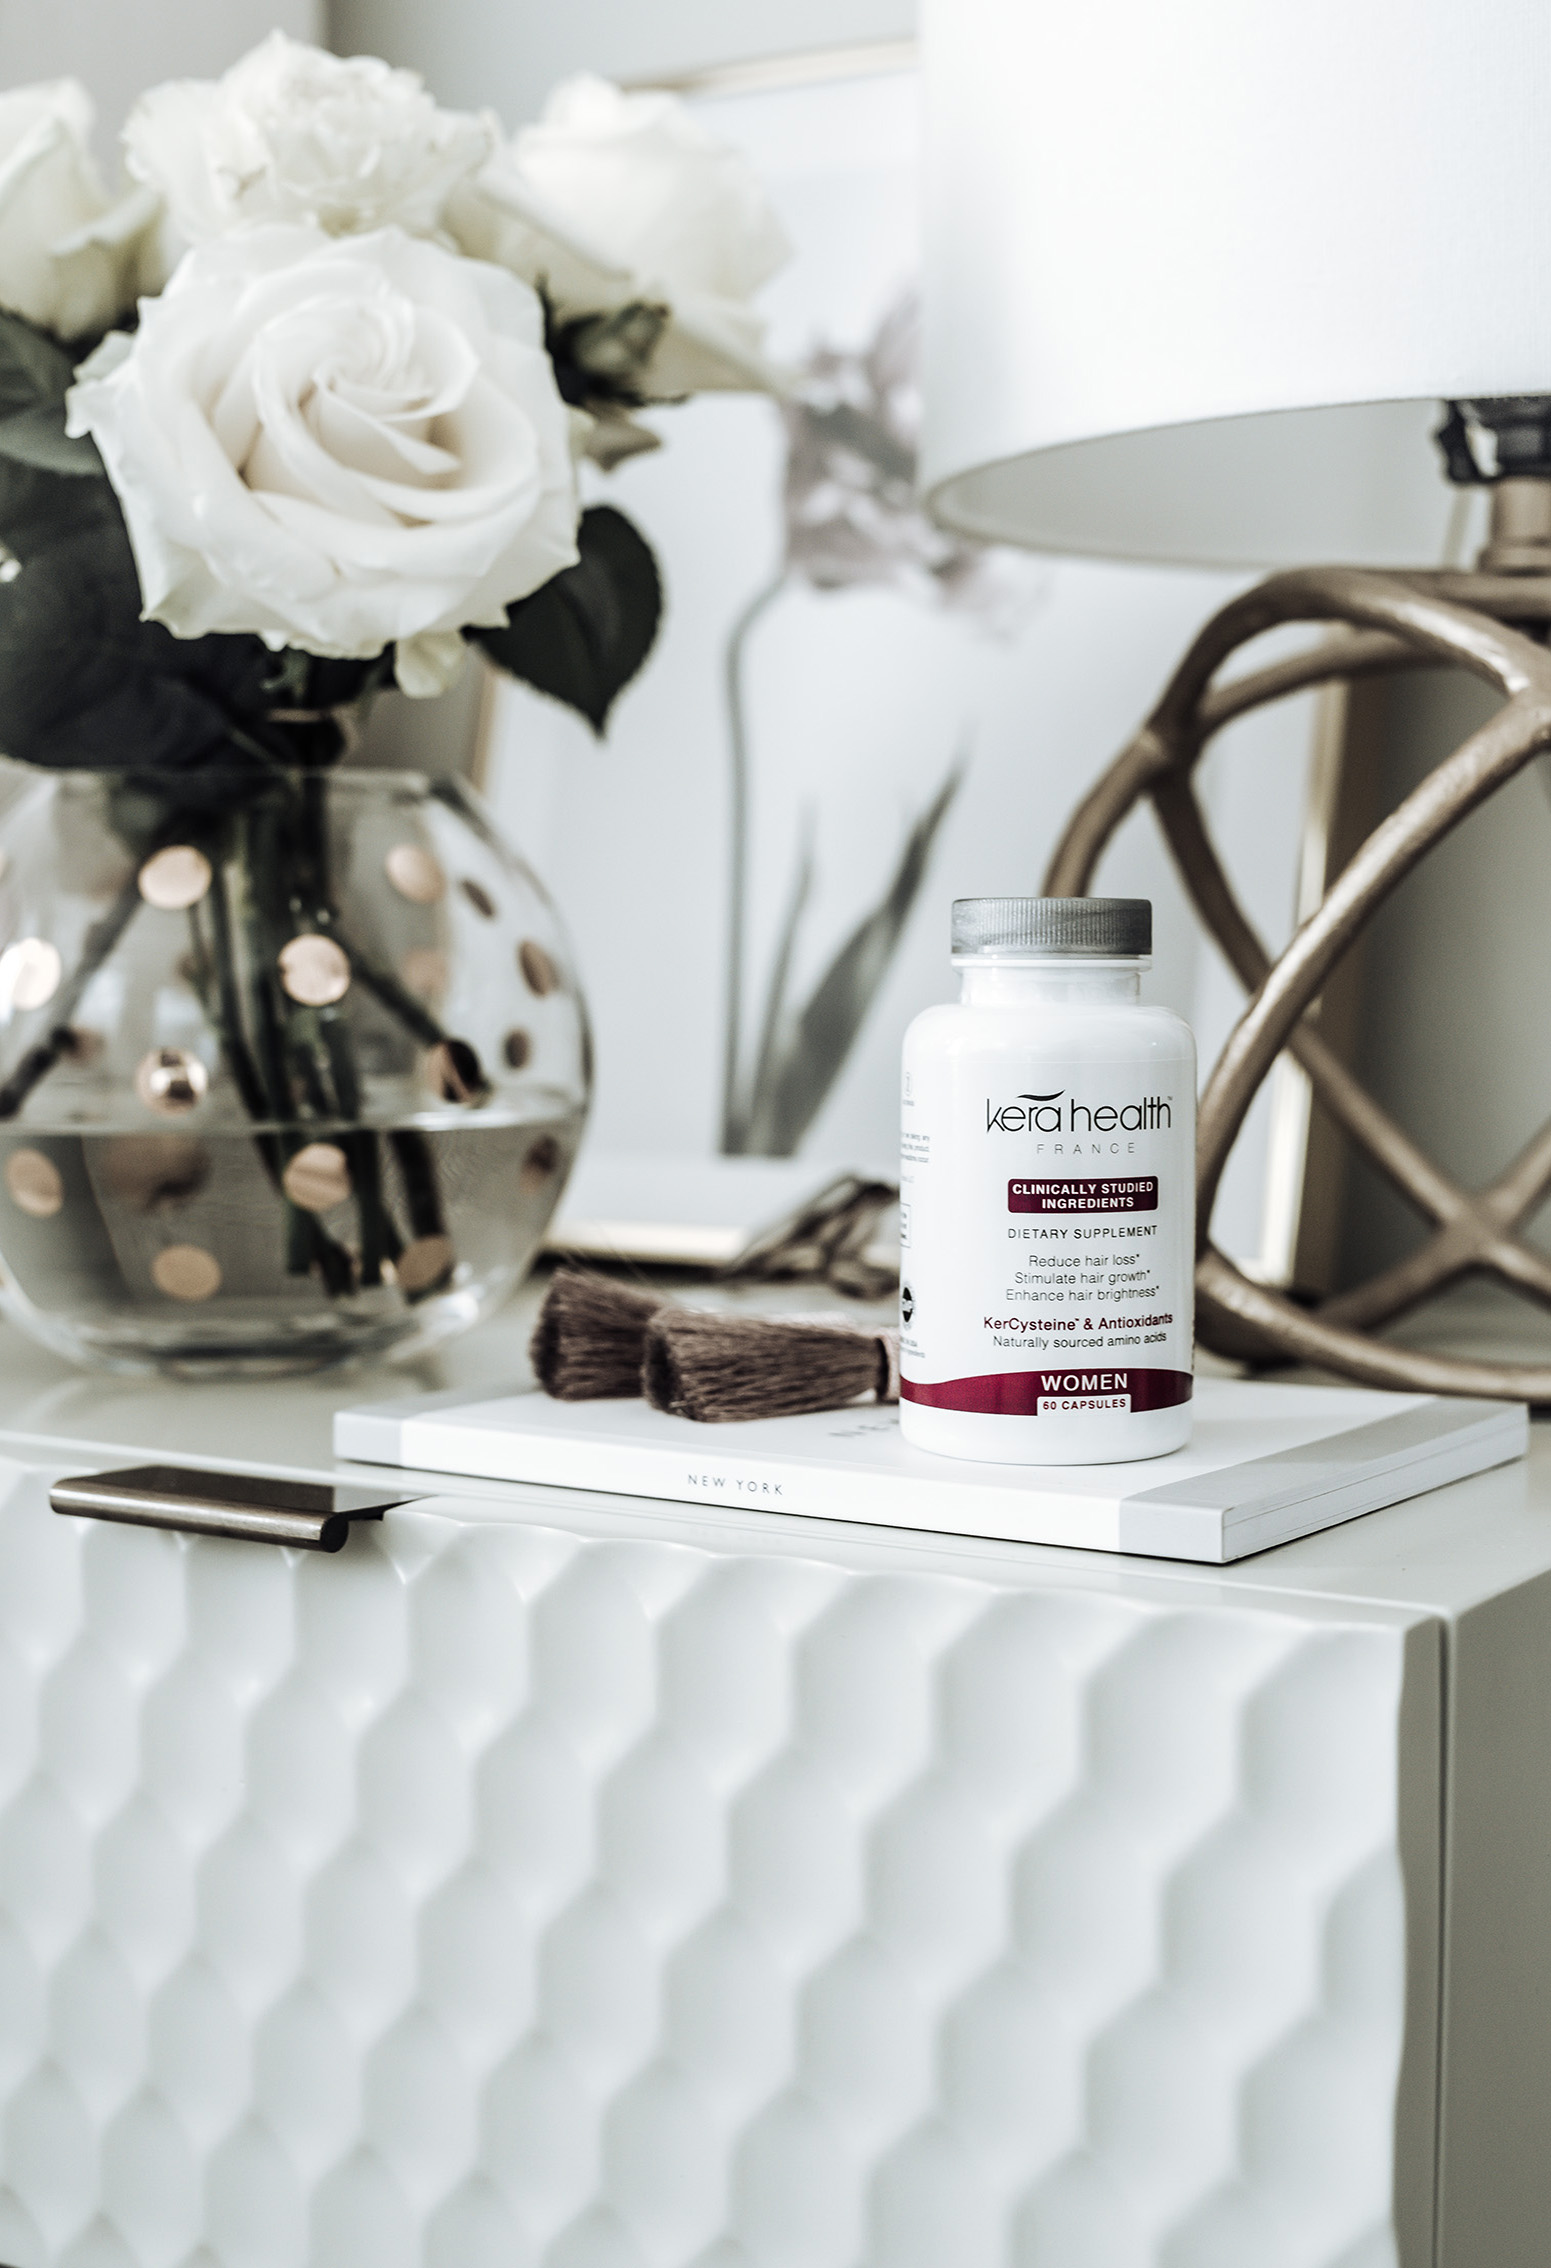 Healthy hair and skin with KeraHealth |Tiffany Jais fashion and lifestyle blogger of Flaunt and Center | Houston fashion blogger | Streetstyle blog | #fashion #hairsupplements #kerahealth #blogger #fashionblog